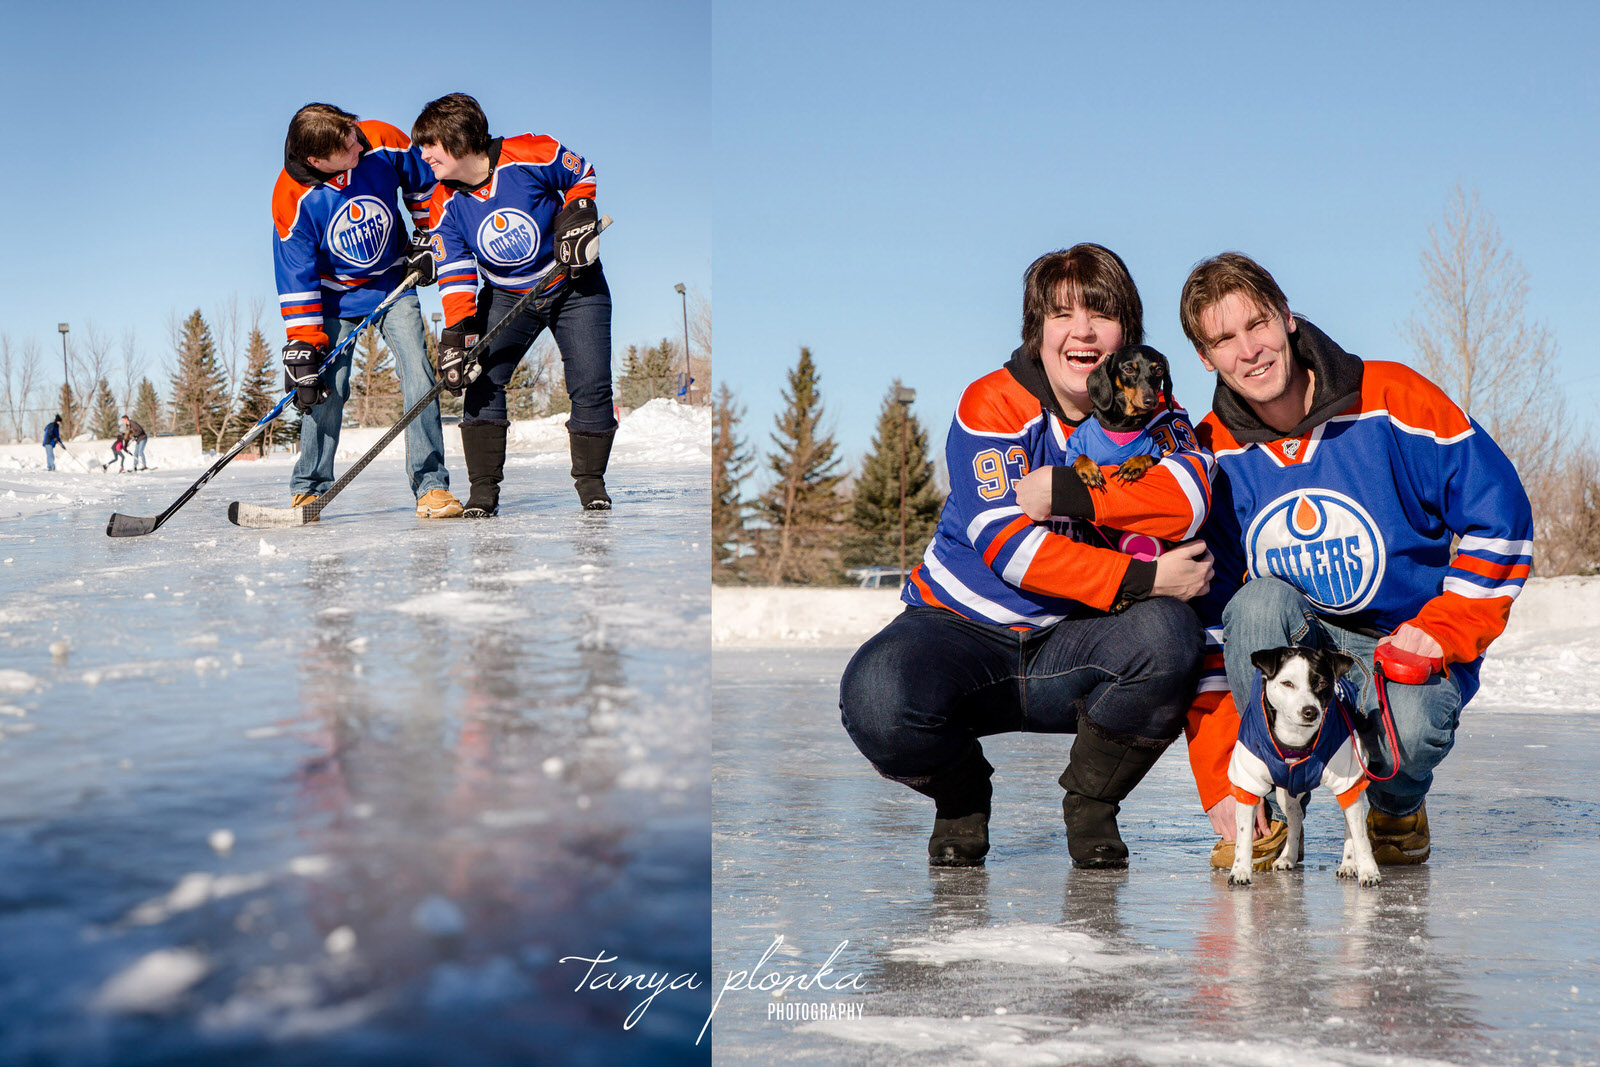 couple in Oilers jerseys pose on outdoor ice rink in Lethbridge with hockey sticks and two small dogs